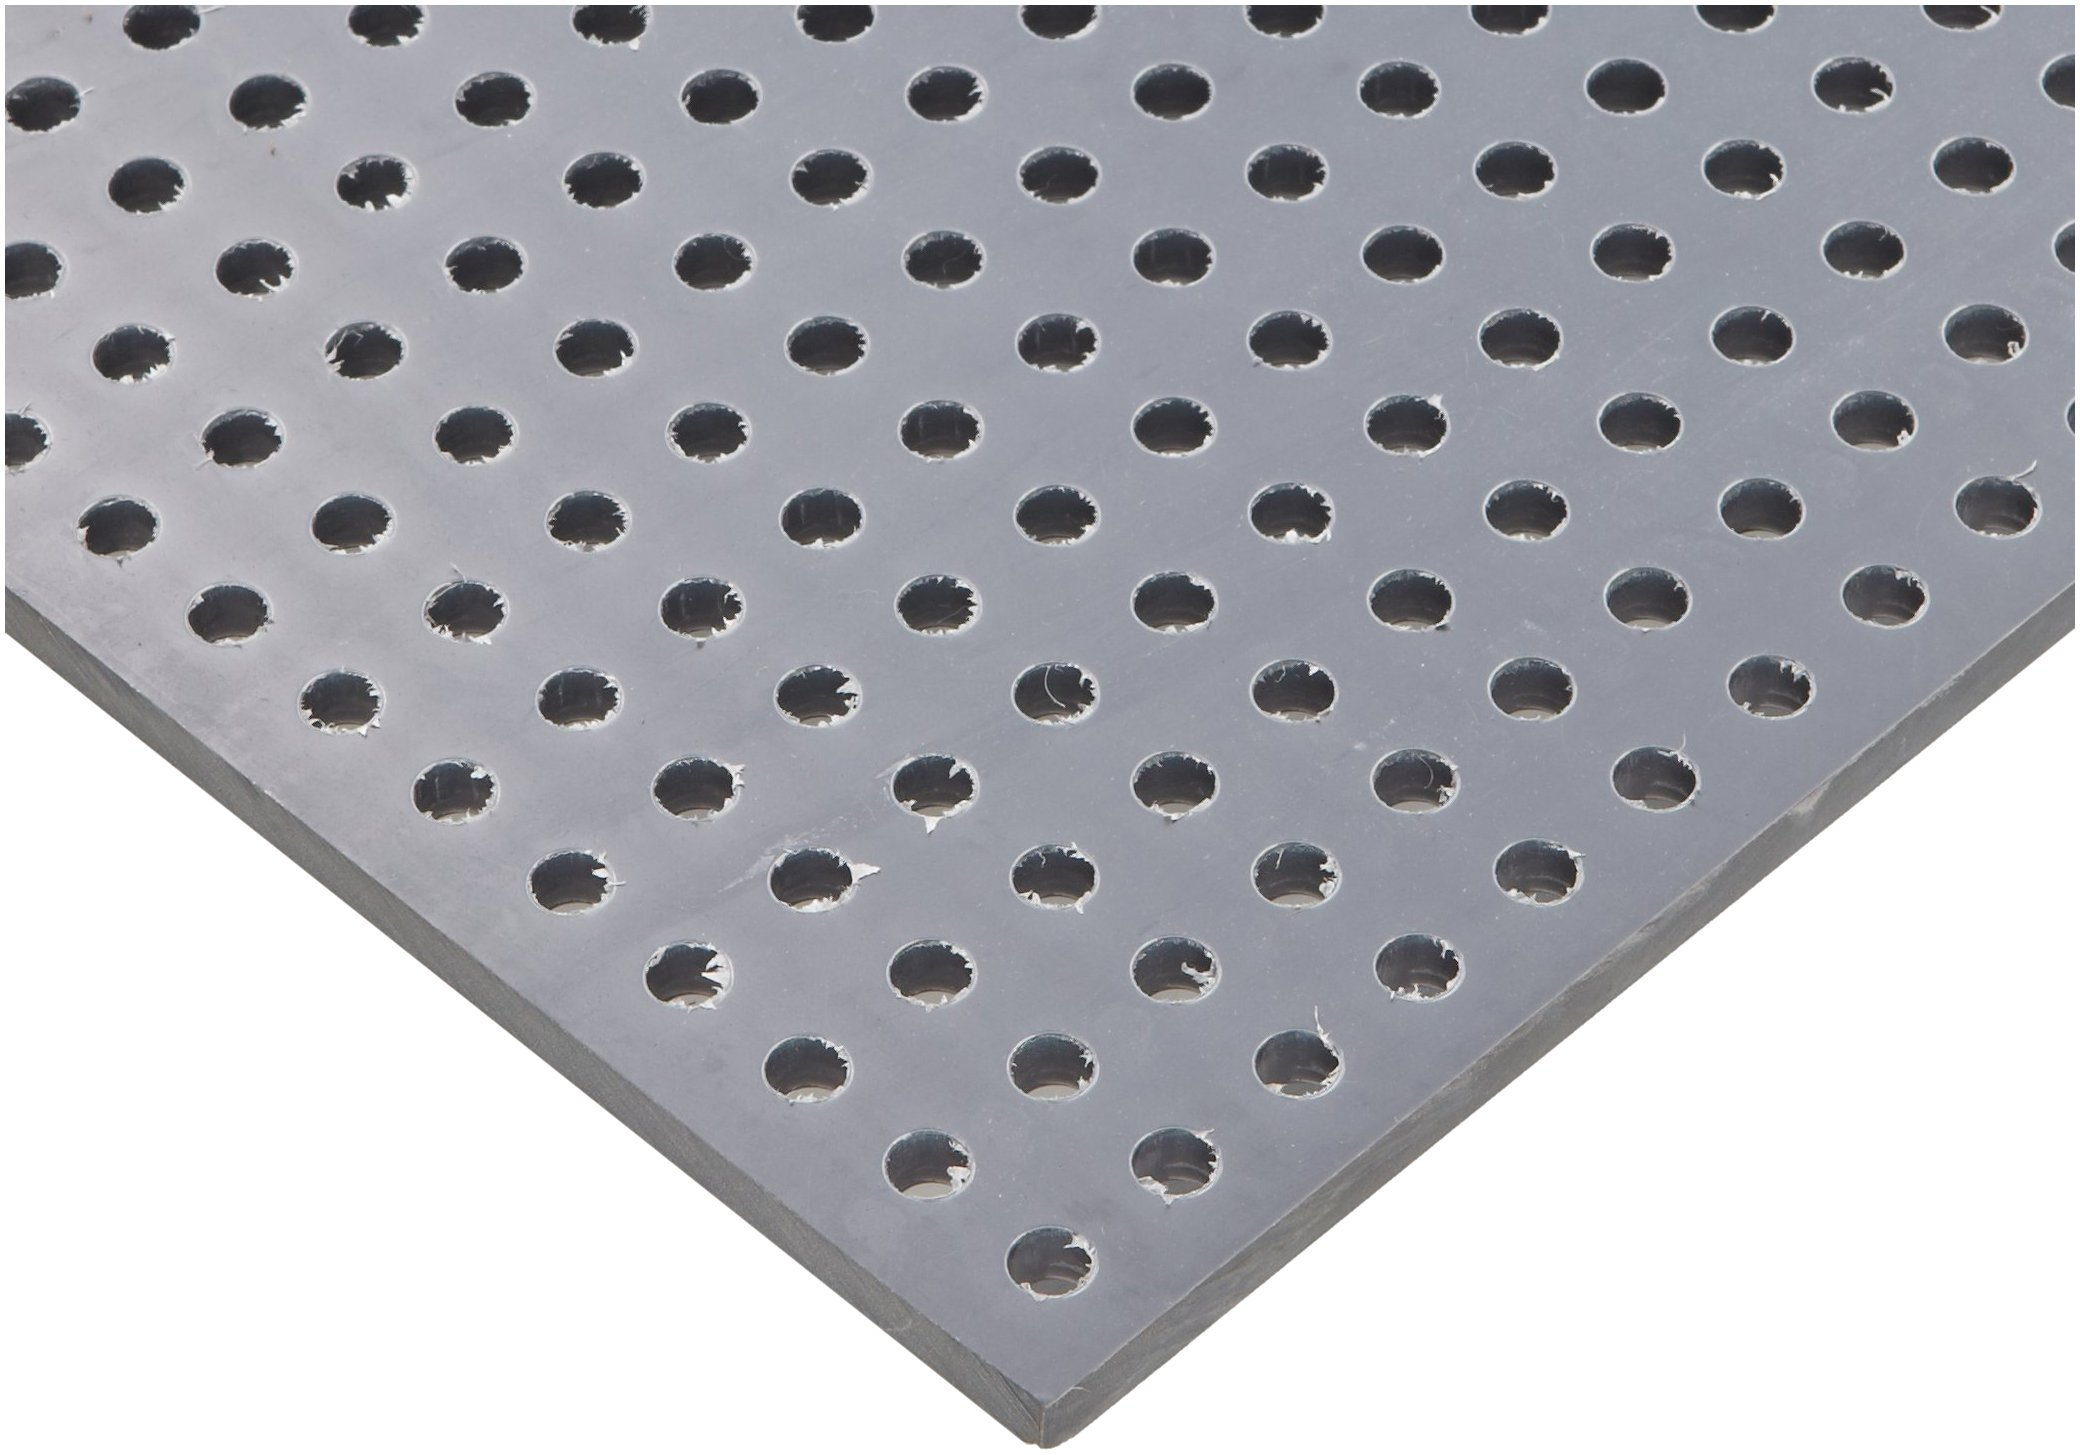 PVC (Polyvinyl Chloride) Perforated Sheet, Staggered Holes, Opaque Gray, 0.250'' Thickness, 32'' Width, 48'' Length, Staggered 1/4'' Holes, 0.5'' Center to Center